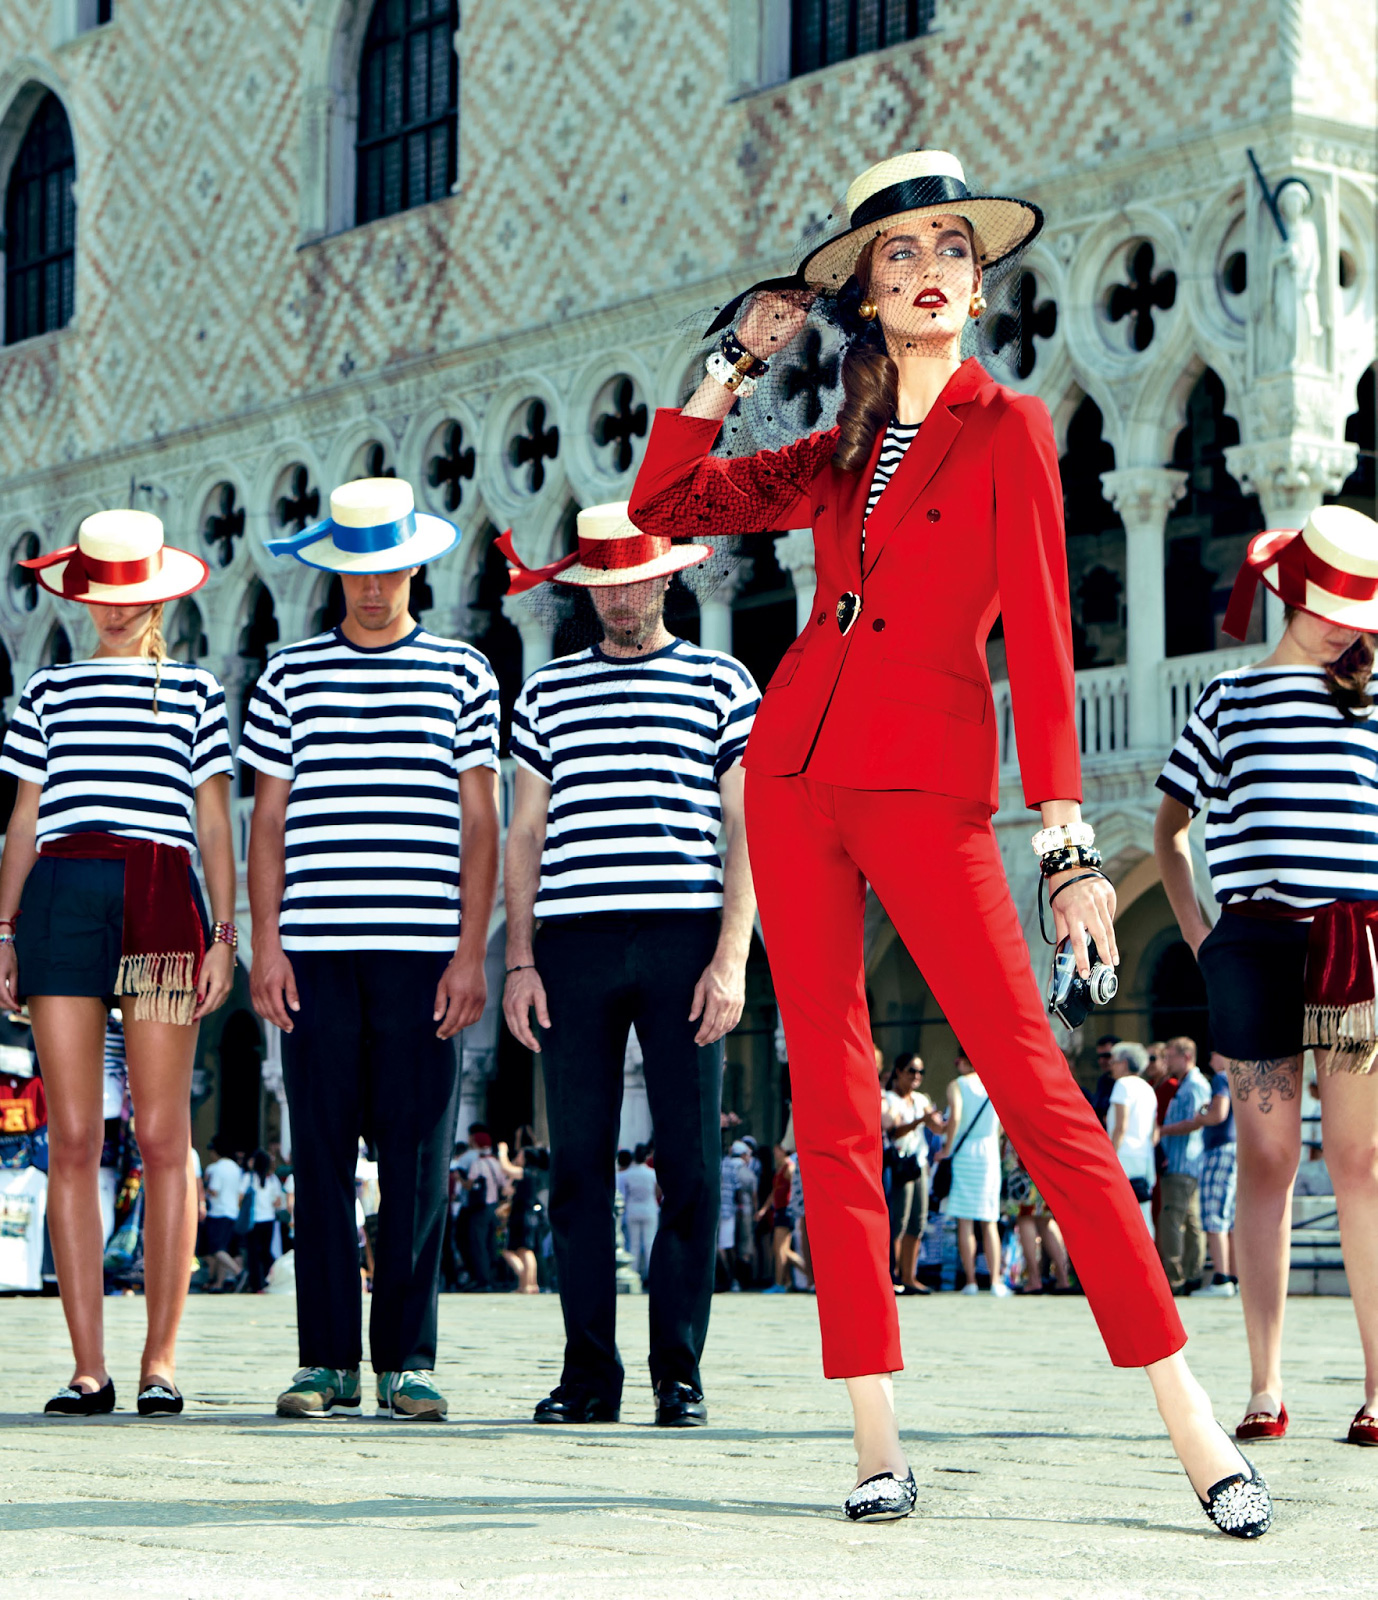 Zuzanna-Bijoch-by-Pierpaolo-Ferrari-for-Vogue-Japan-February-2014-(My-Fascination-with-Venice)-(7)